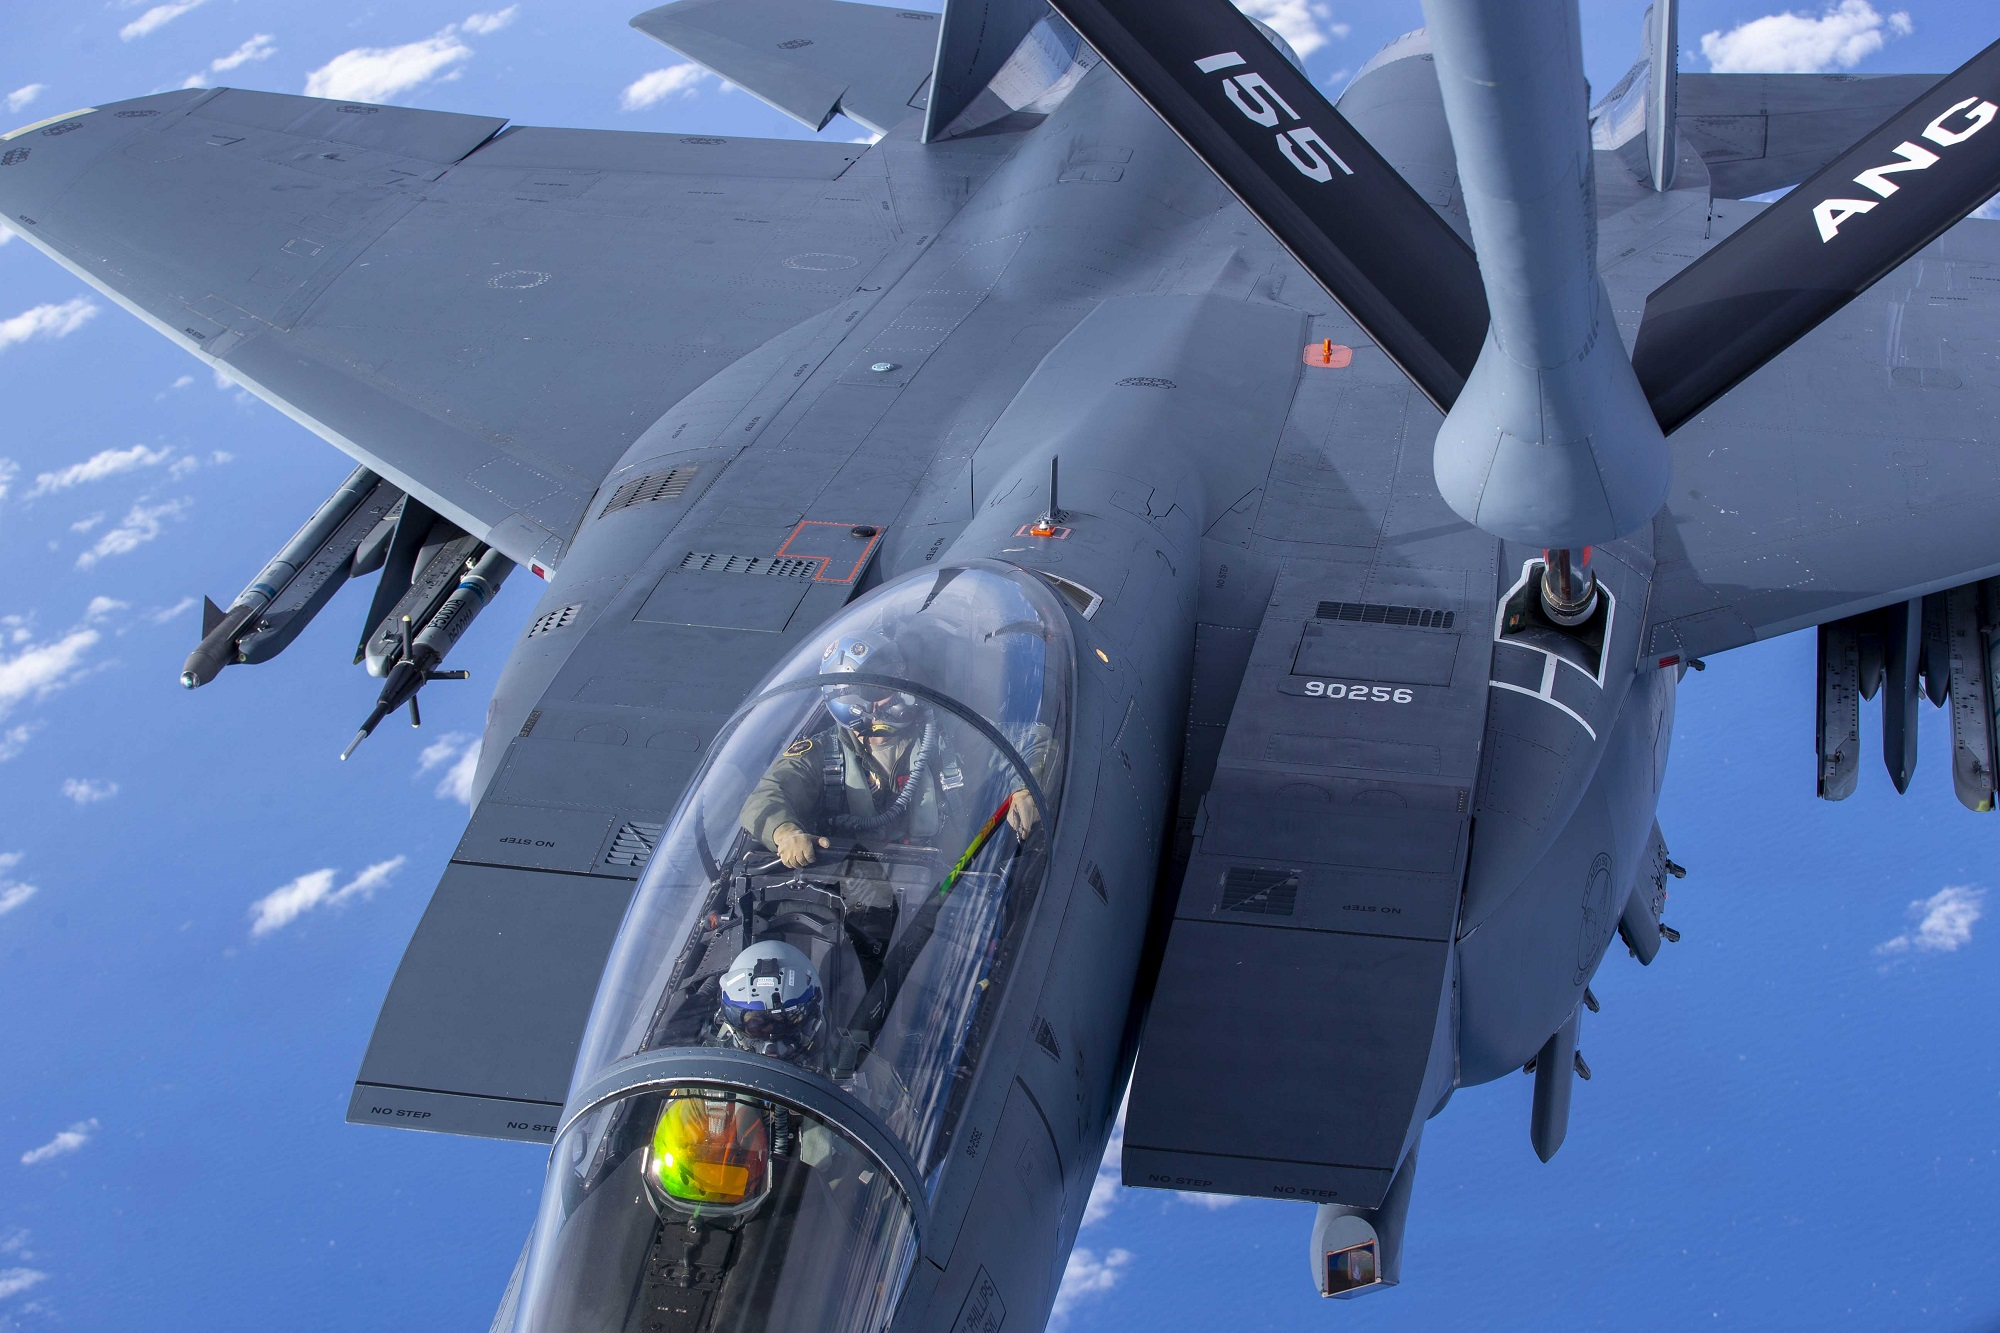 An Air Force F-15E Strike Eagle prepares to receive fuel from a KC-135 Stratotanker during Emerald Flag over the Gulf of Mexico, Dec. 3, 2020. (Staff Sgt Joshua Hoskins/Air Force)